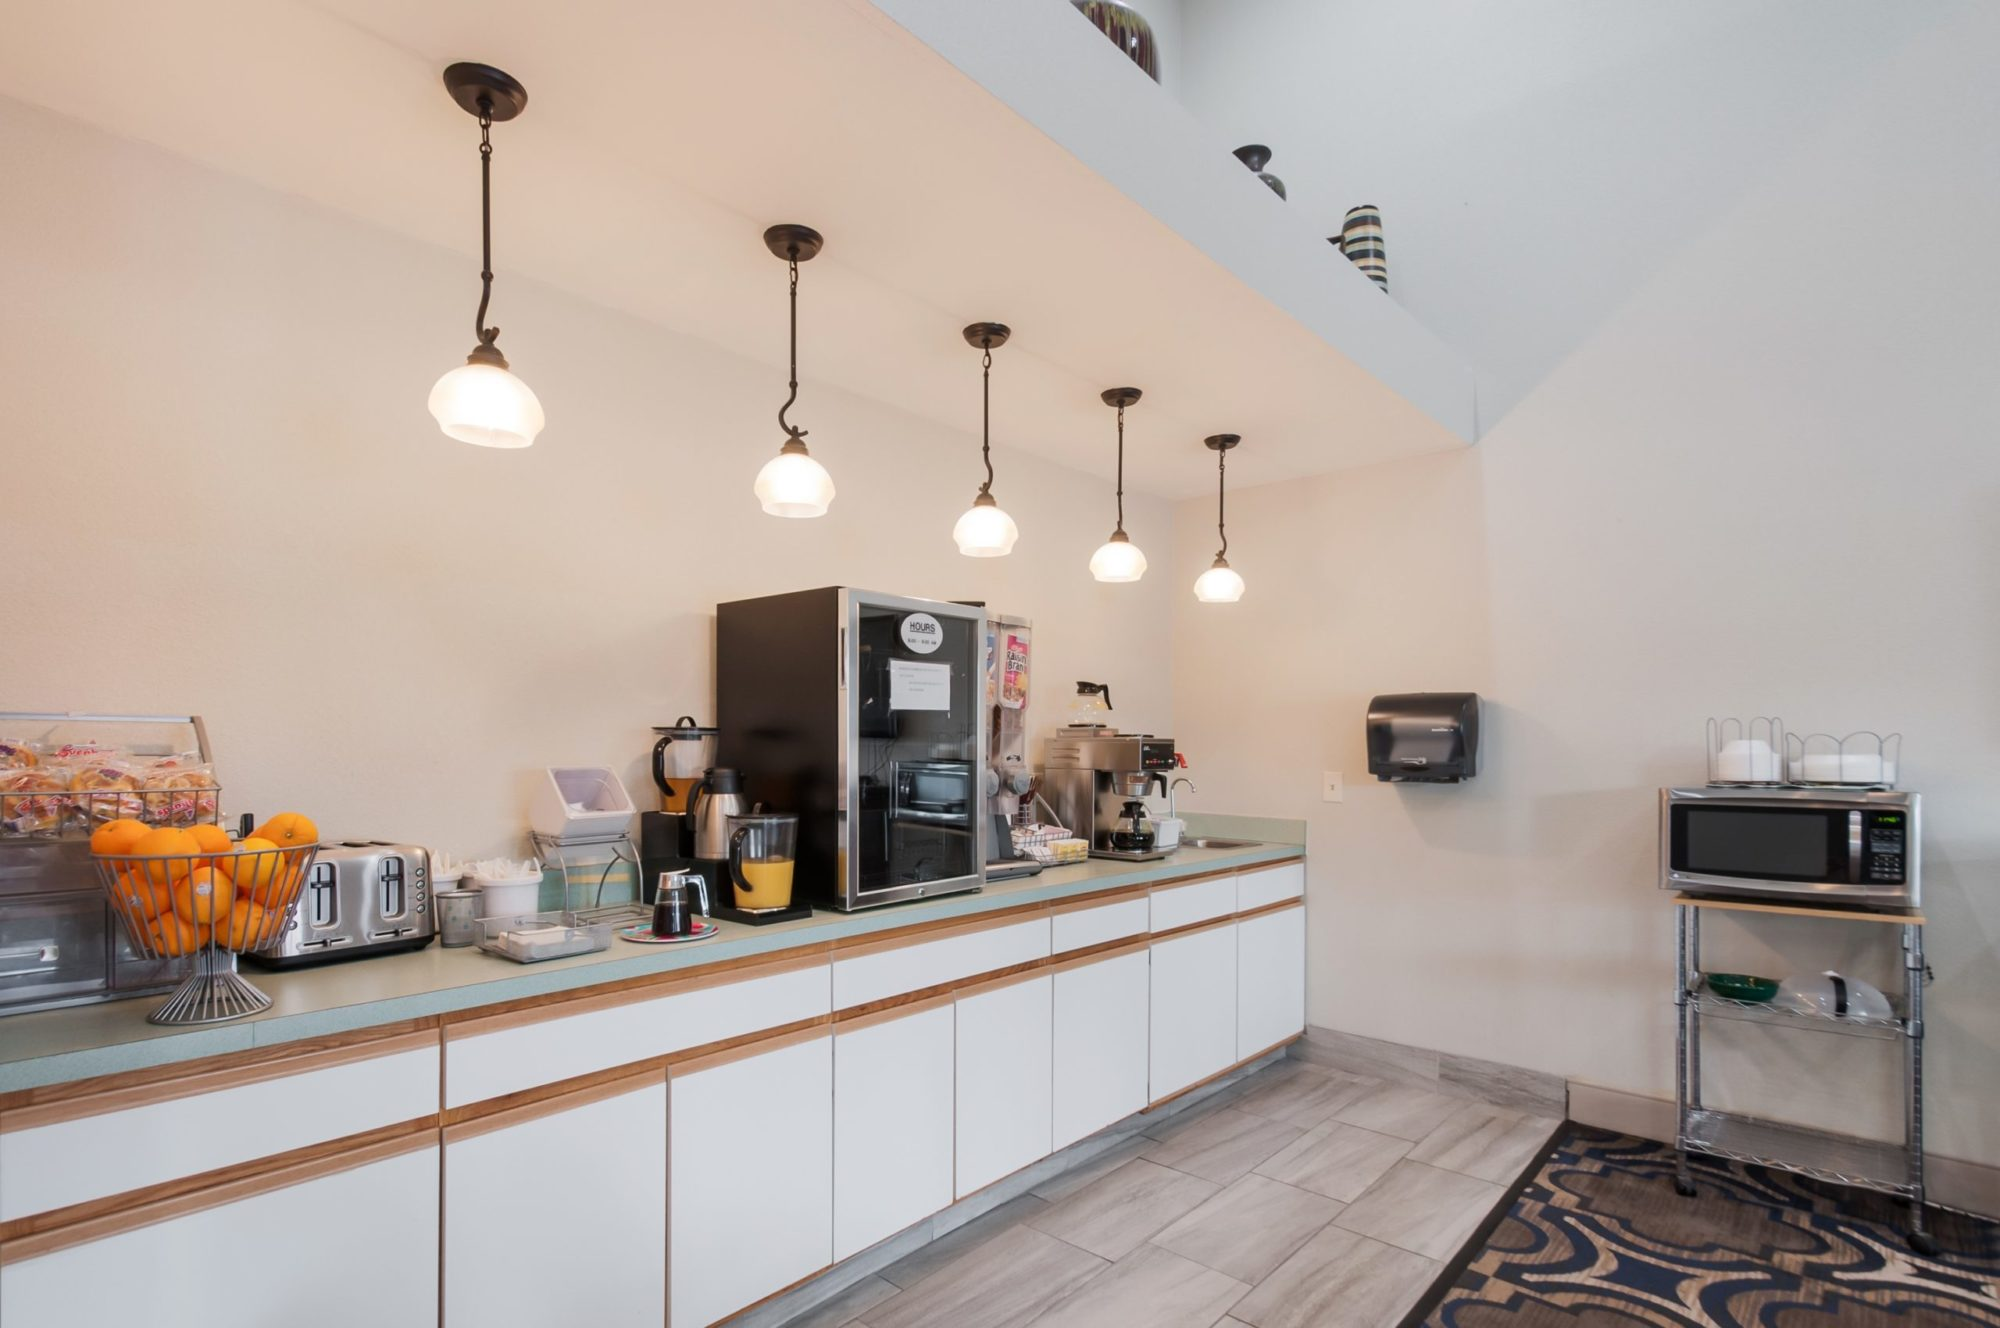 Breakfast counter with coffee machine, cereal dispenser, pitchers of juice, toaster, assorted breakfast pastries, fresh fruit , microwave, wall mounted paper towel dispenser, suspended lighting, disposable plates and silver ware, caarpet and tile flooring